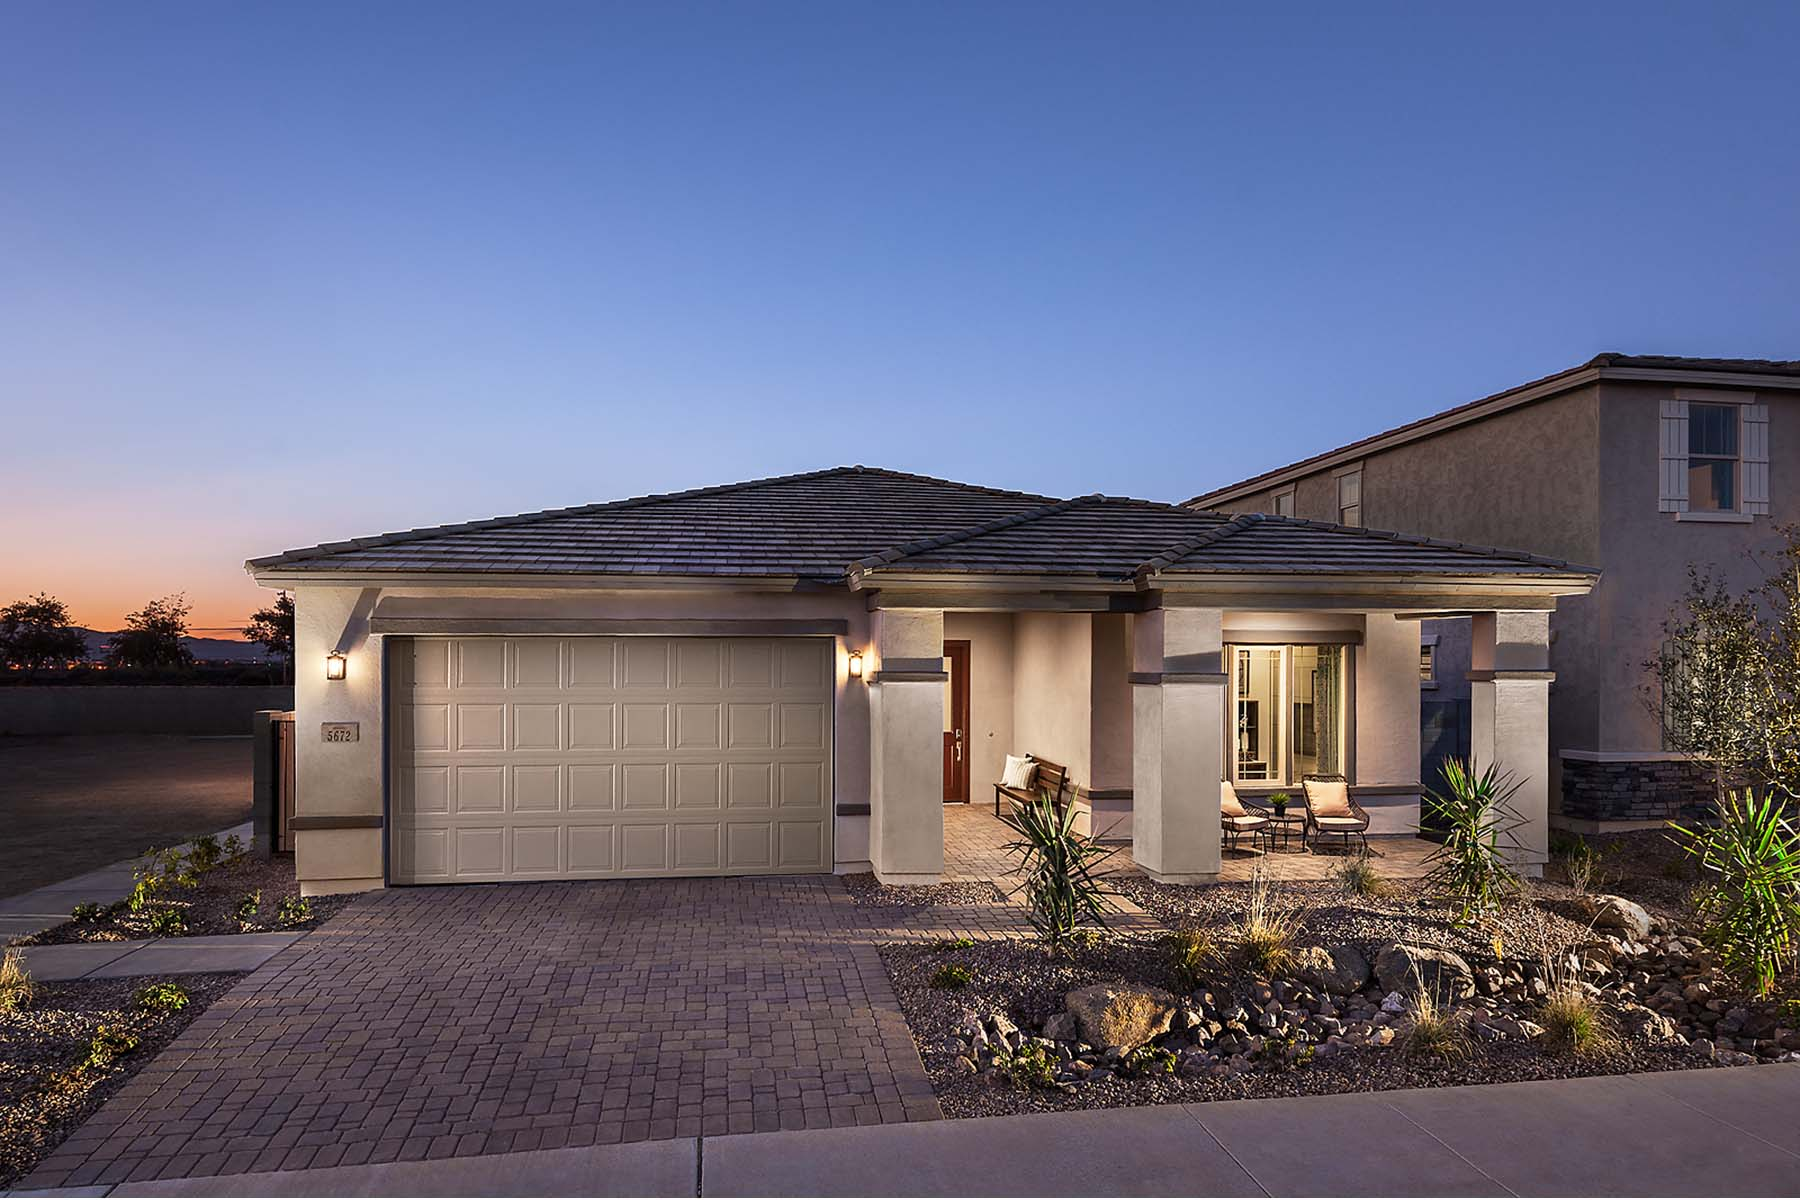 Bellwood Plan  at Vista Diamante at Camelback Ranch in Phoenix Arizona by Mattamy Homes